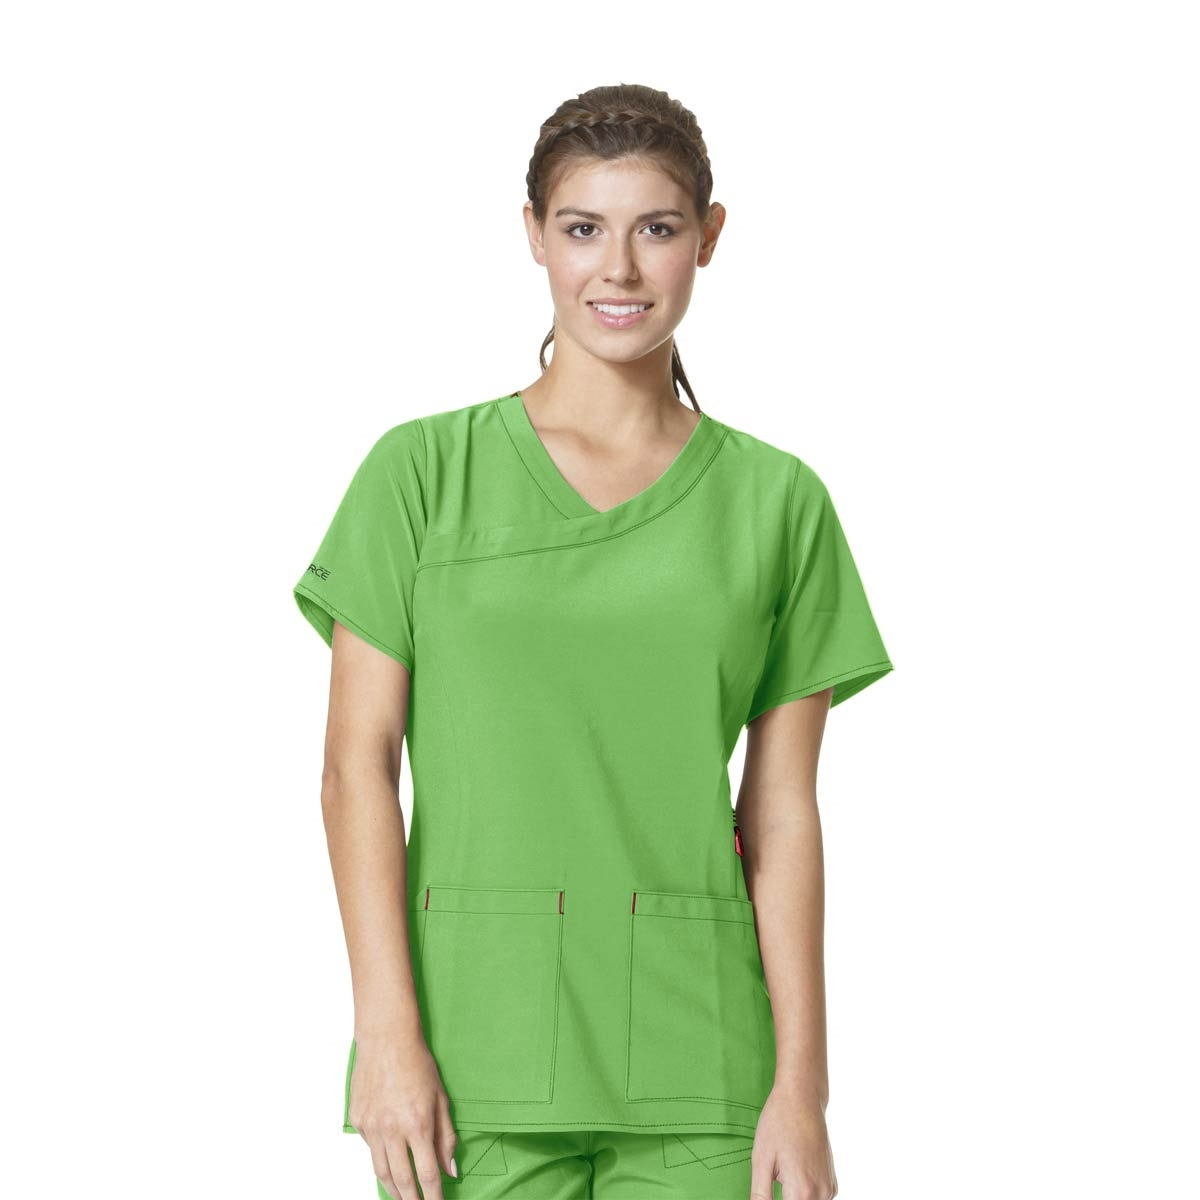 buying now affordable price where can i buy Carhartt Cross-Flex Women's Y-Neck Fashion Top